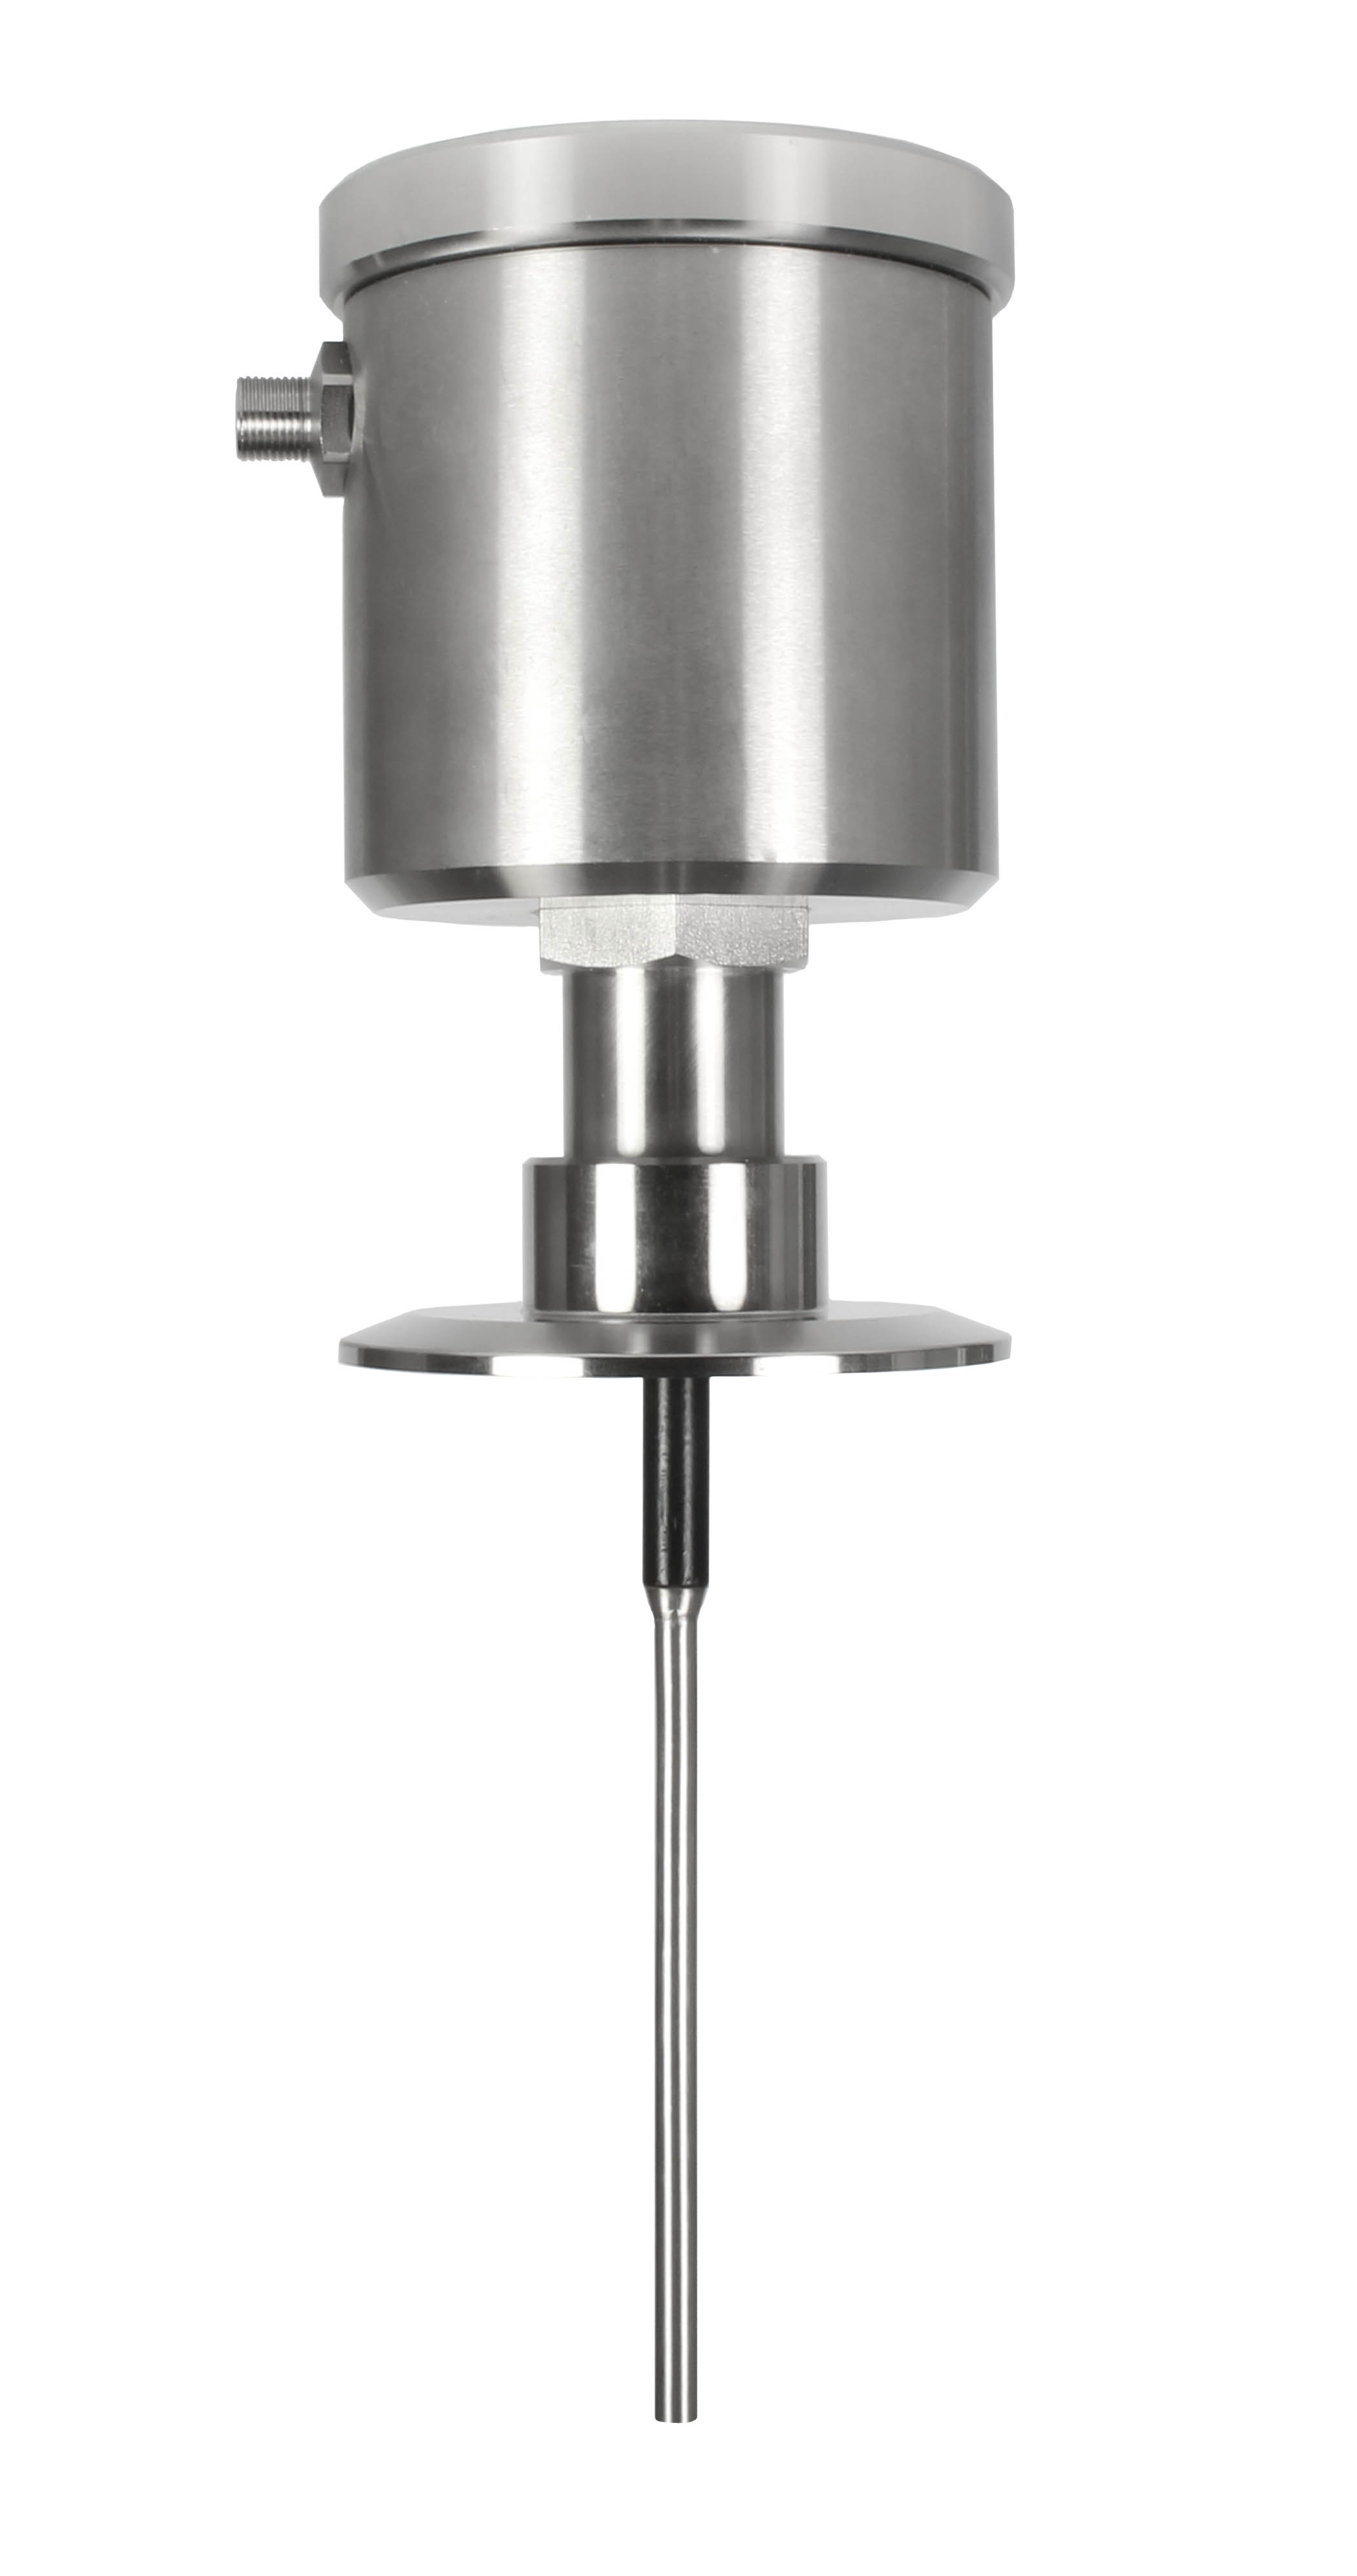 Level Sensors: LN Potentiometric Transmitter